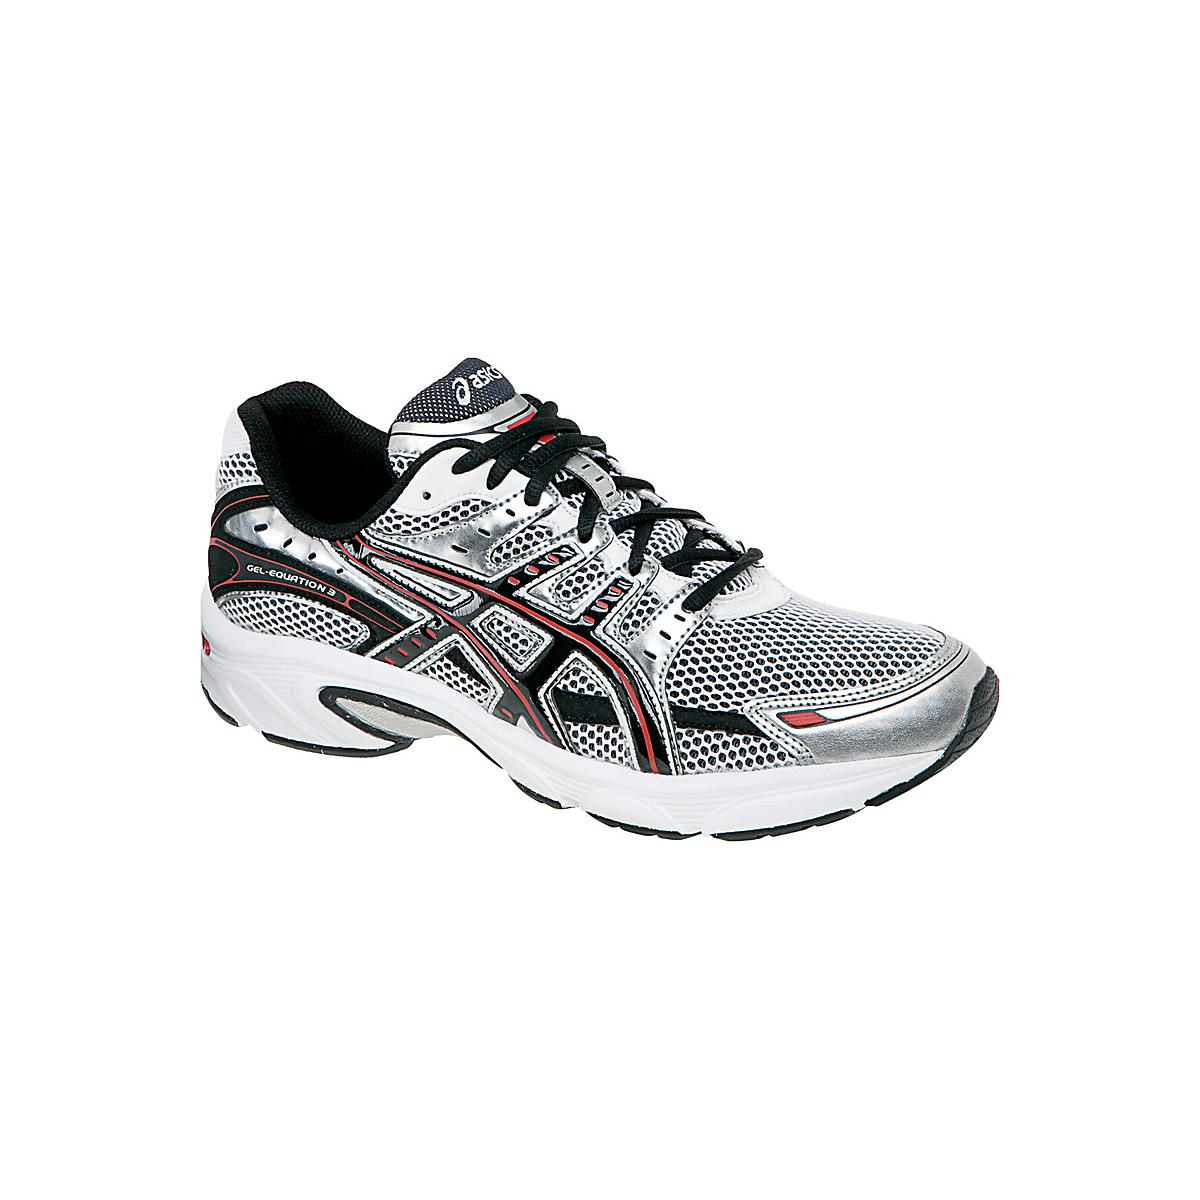 5e9a1fce750a Mens ASICS GEL-Equation 3 Running Shoe at Road Runner Sports